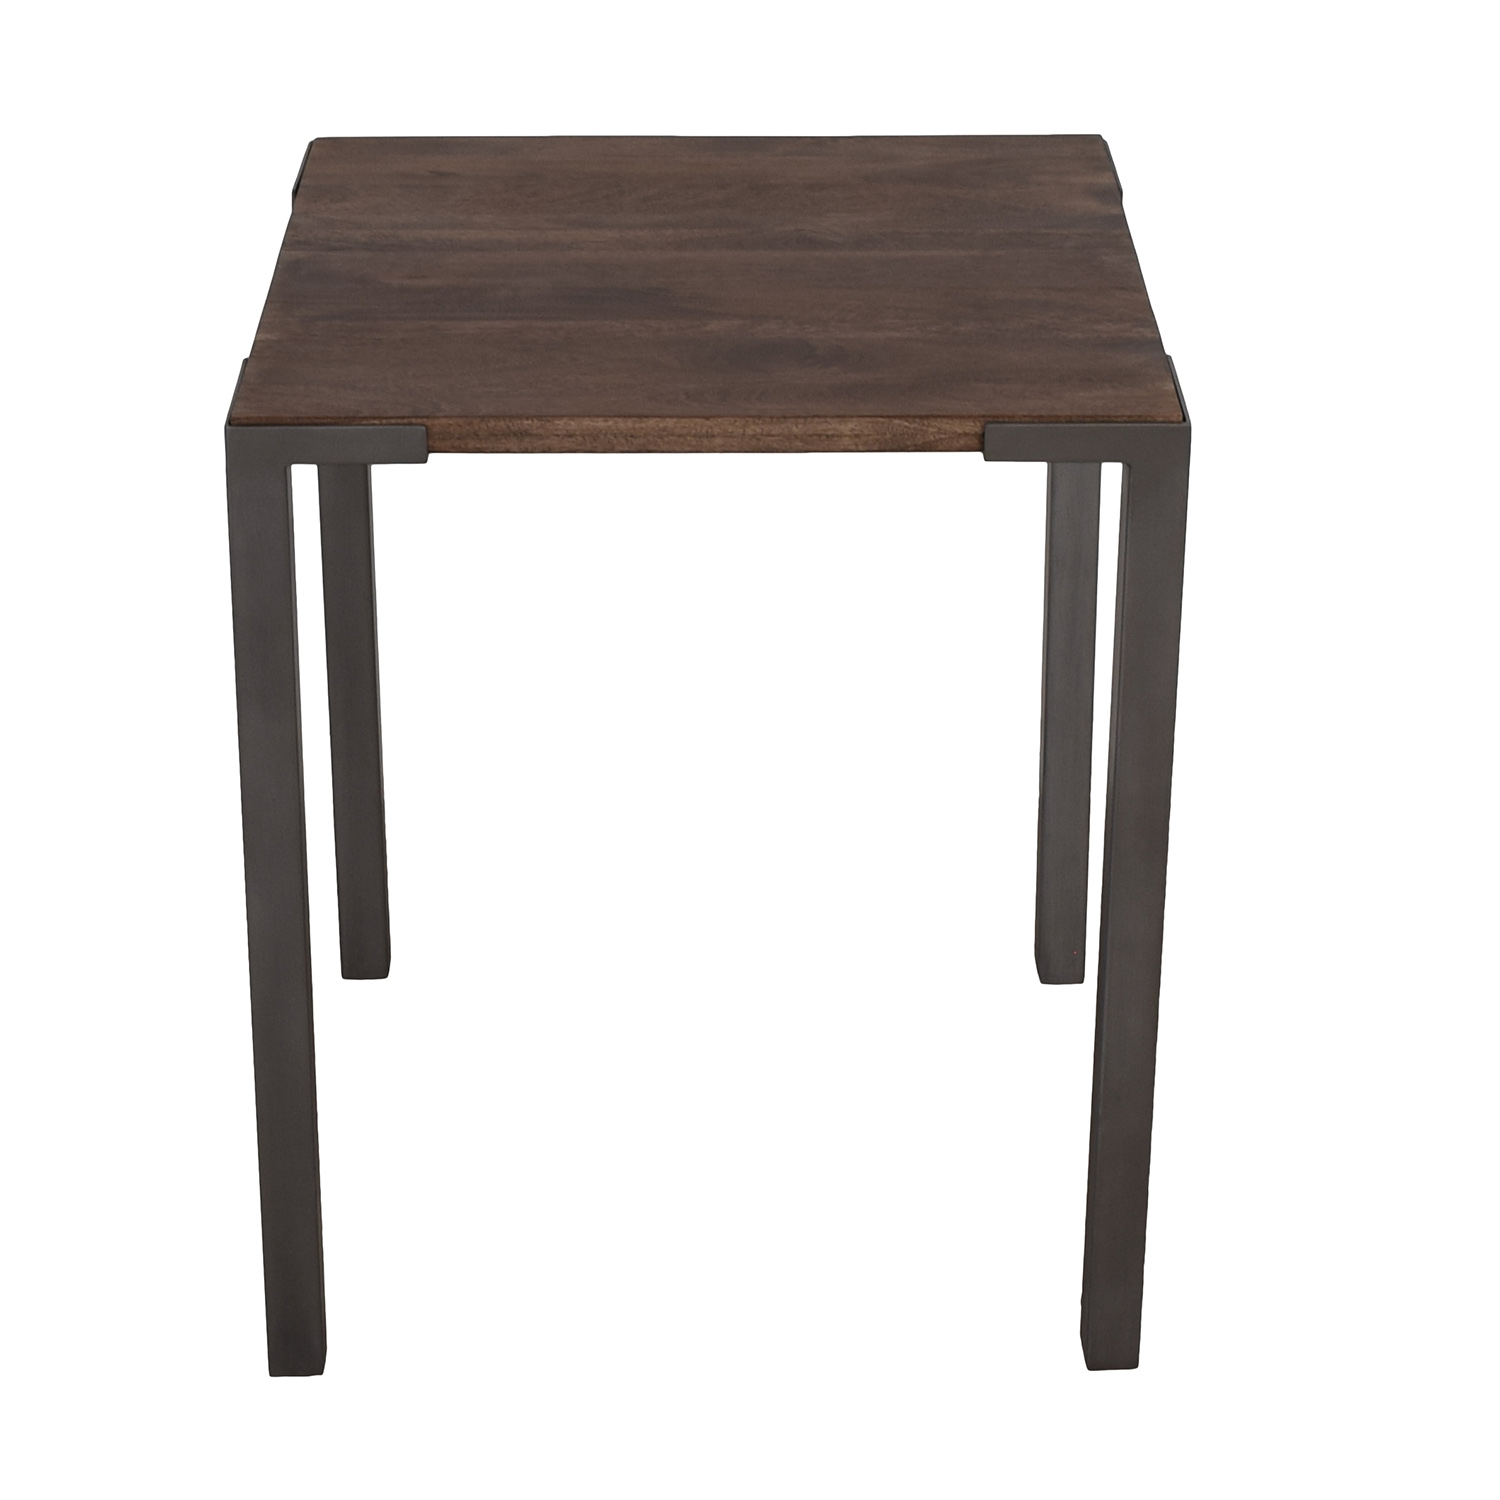 buy CB2 Stilt 2 Rustic Top Counter Table CB2